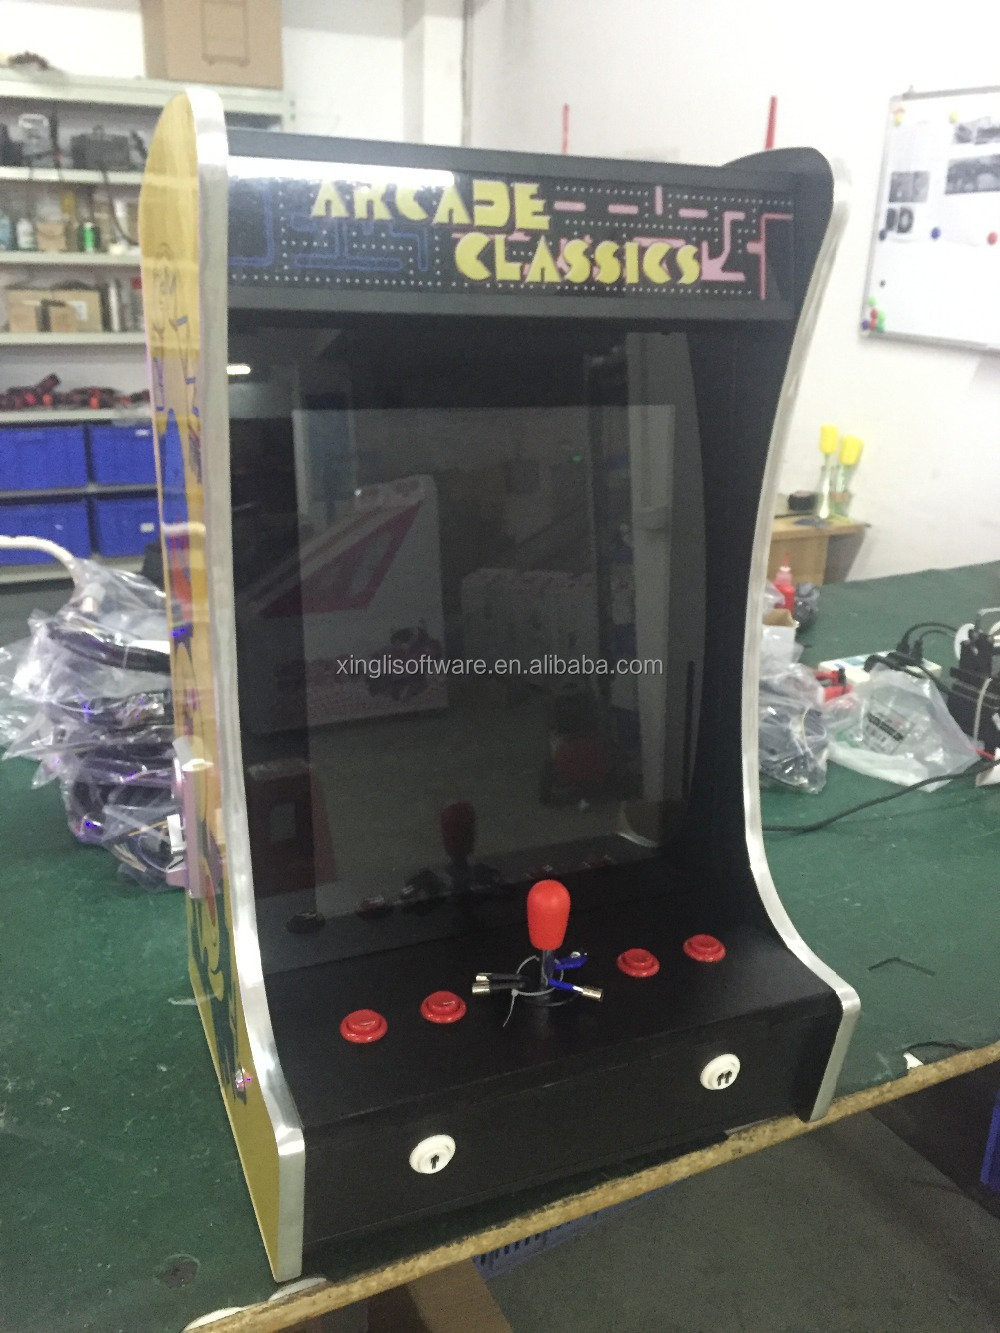 19 inch LCD Mini Bartop Cocktail Machine With Classical games 60 in 1 Game PCB with Spainish joystick and American button